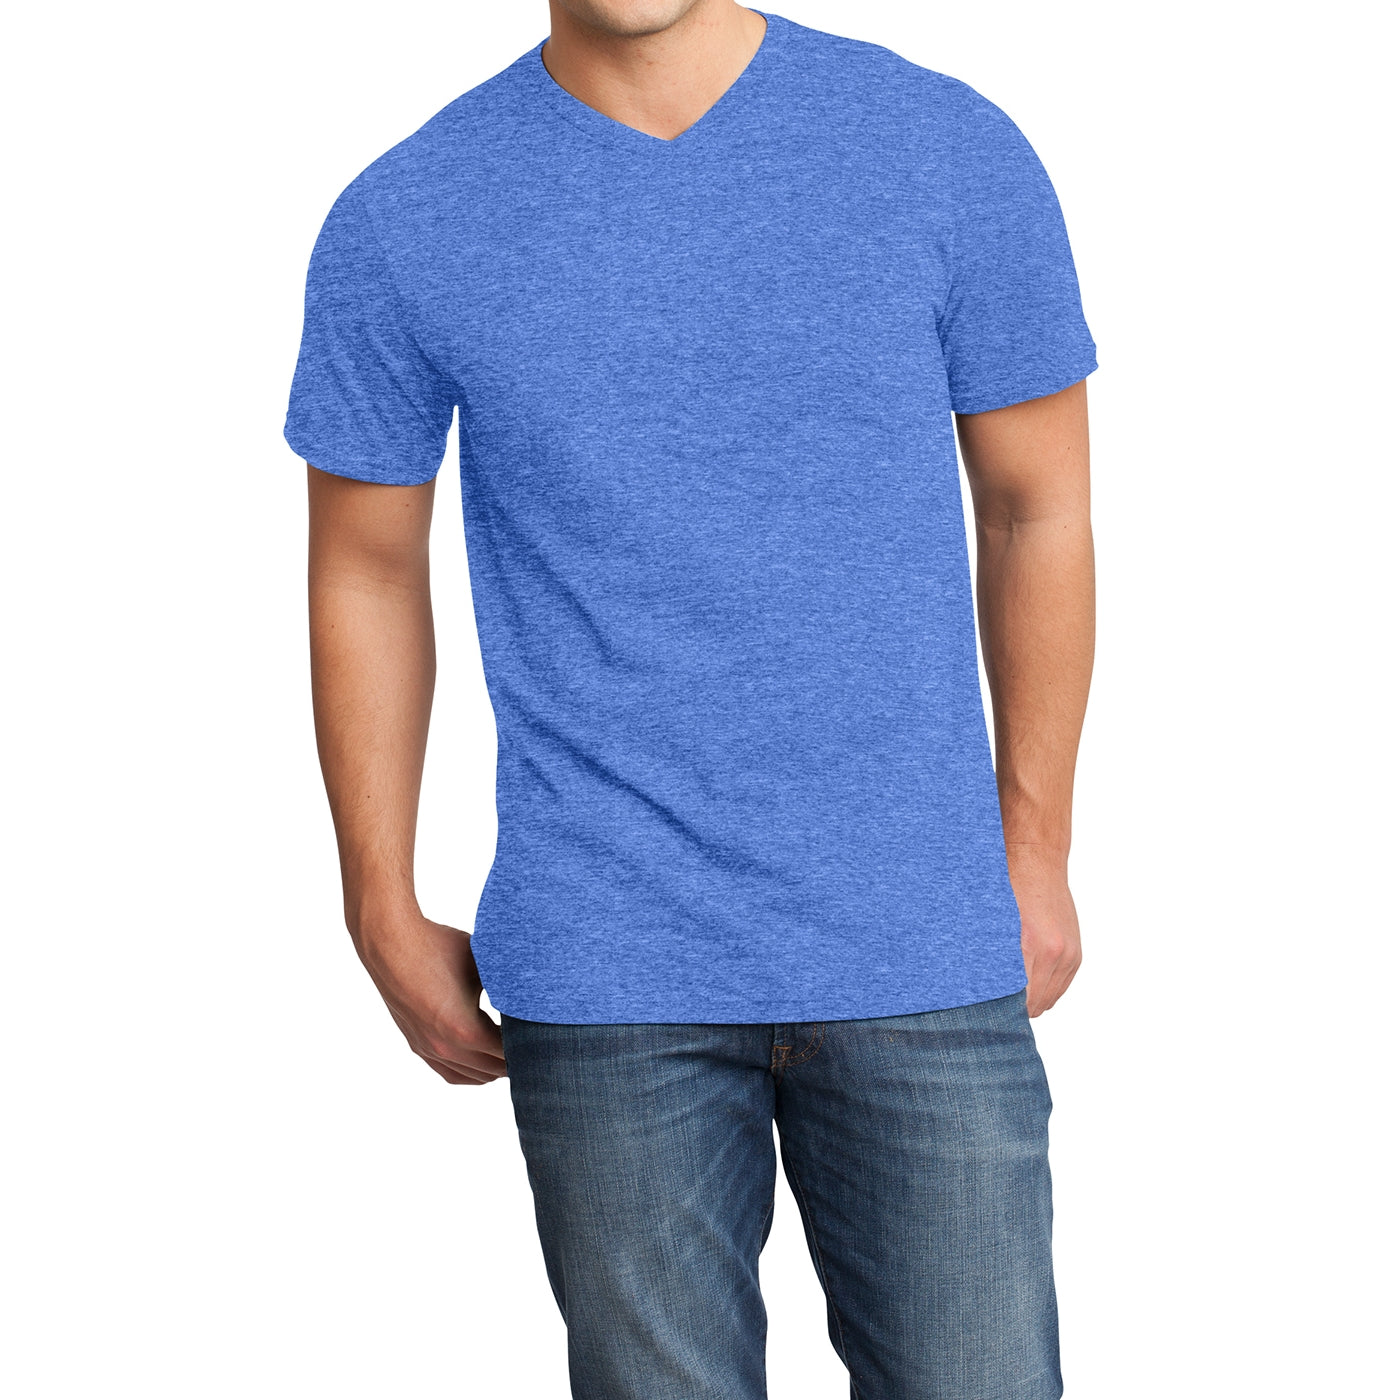 Men's Young  Very Important Tee V-Neck - Heathered Royal